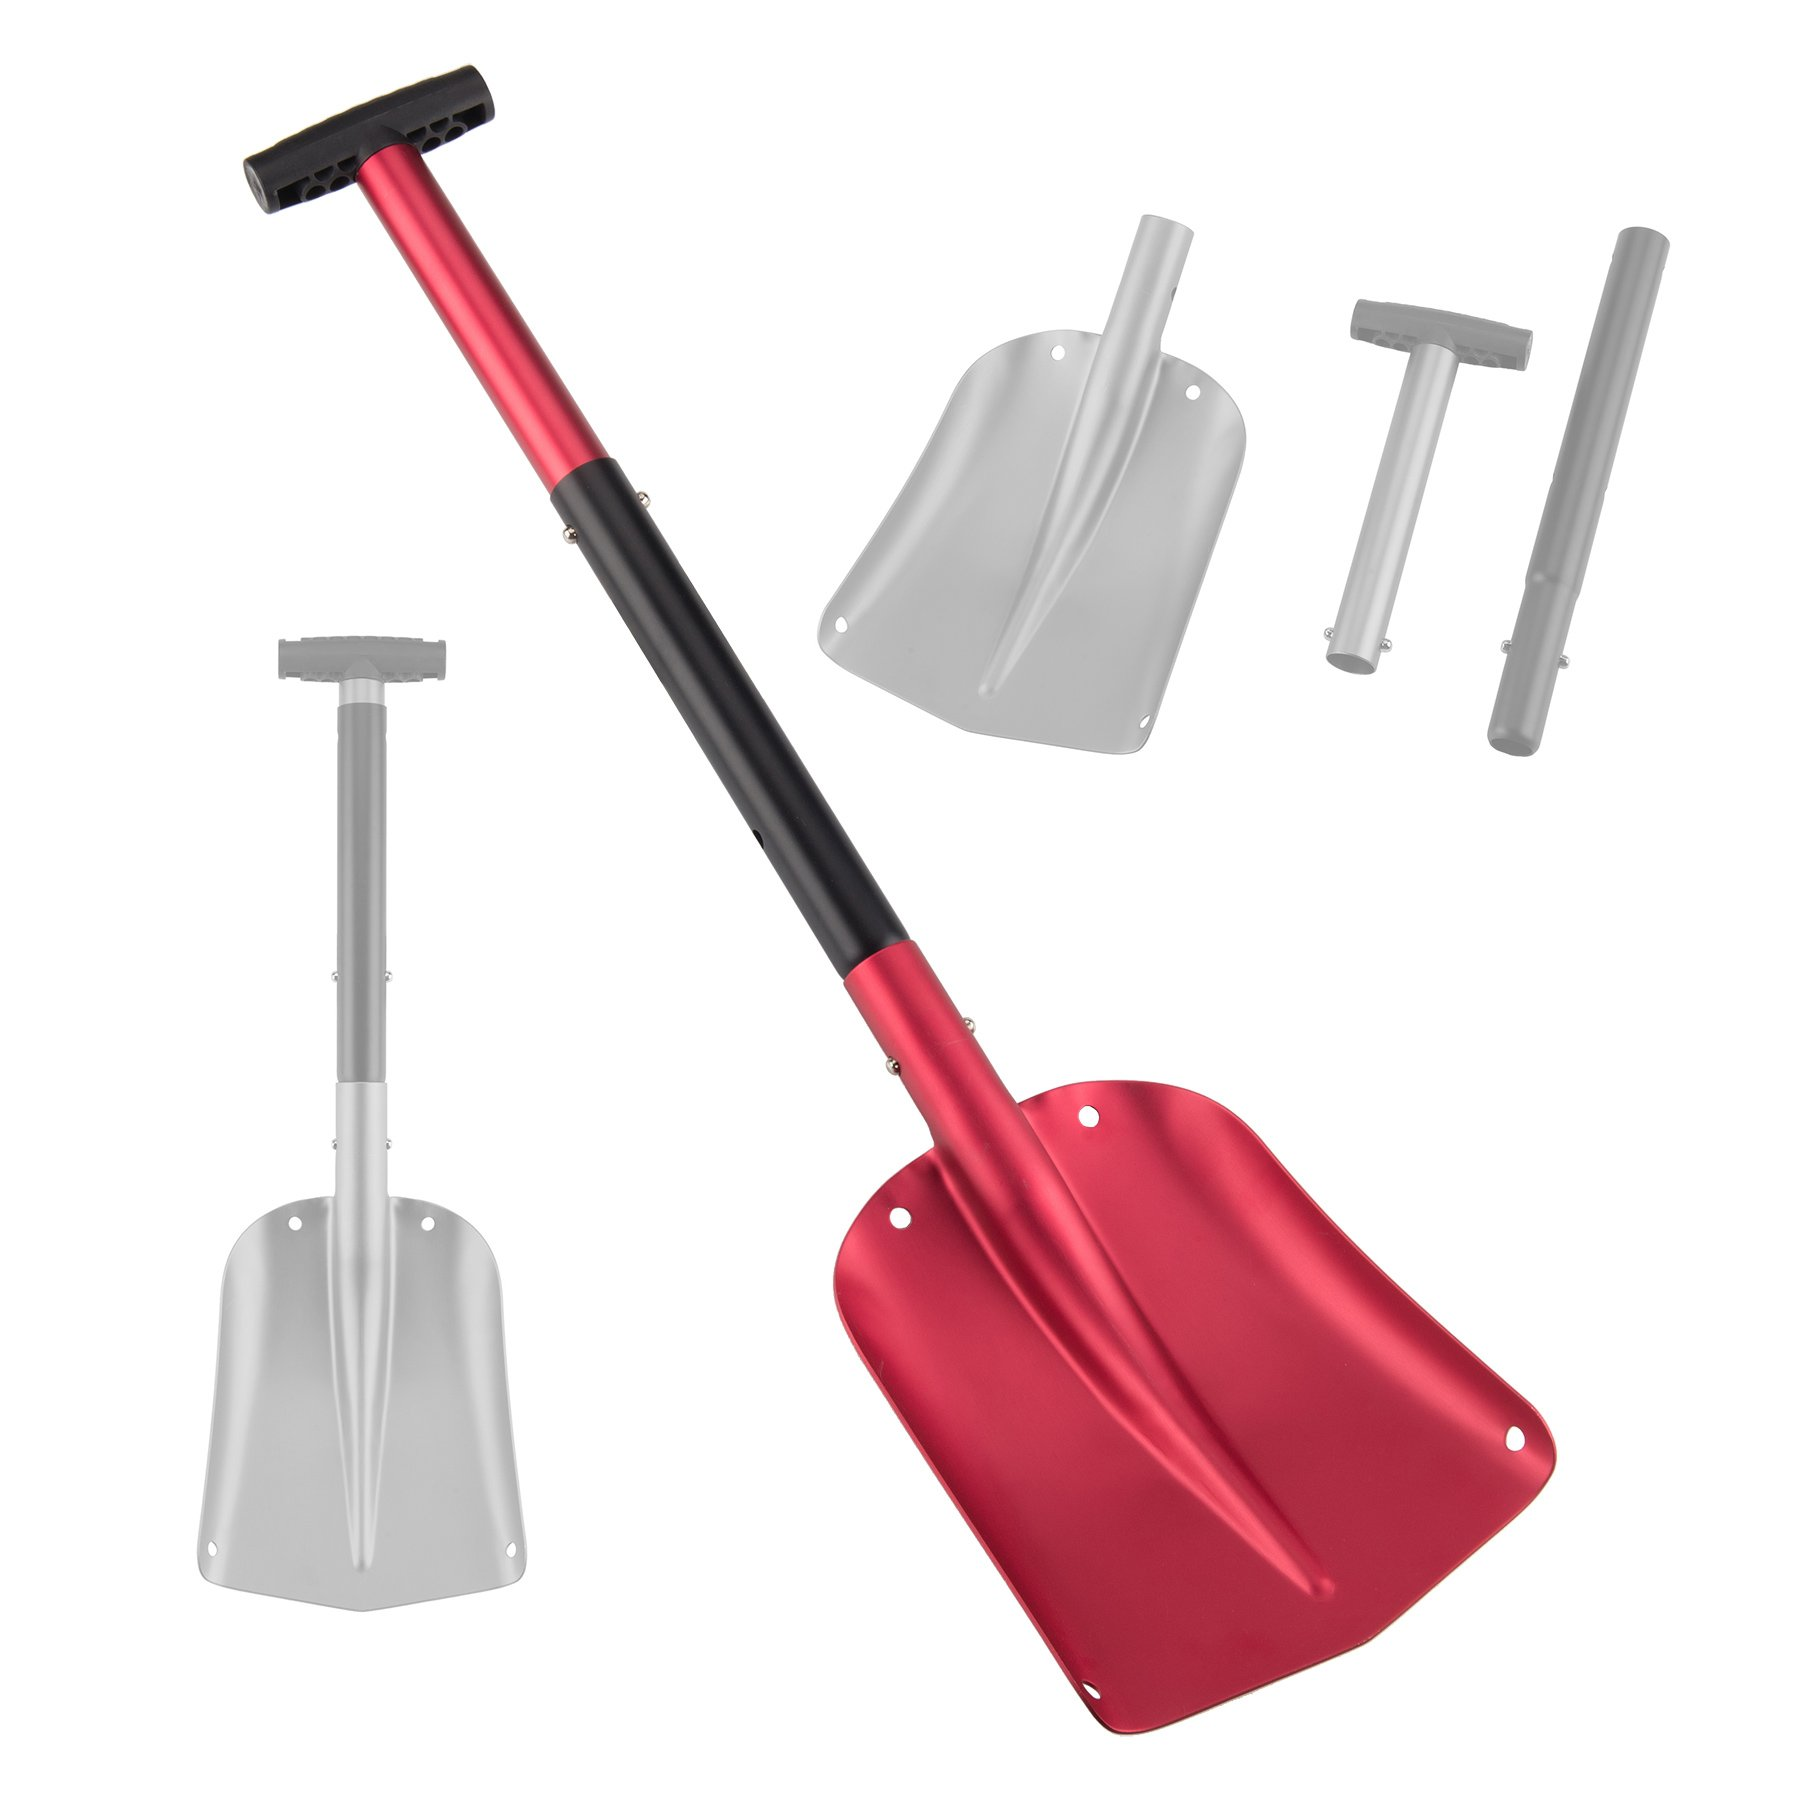 Pinty 26-32 Inch Aluminum Lightweight Utility Shovel Adjustable and Collapsible Winter Snow Shovels for Car Camping Garden (Red) by Pinty